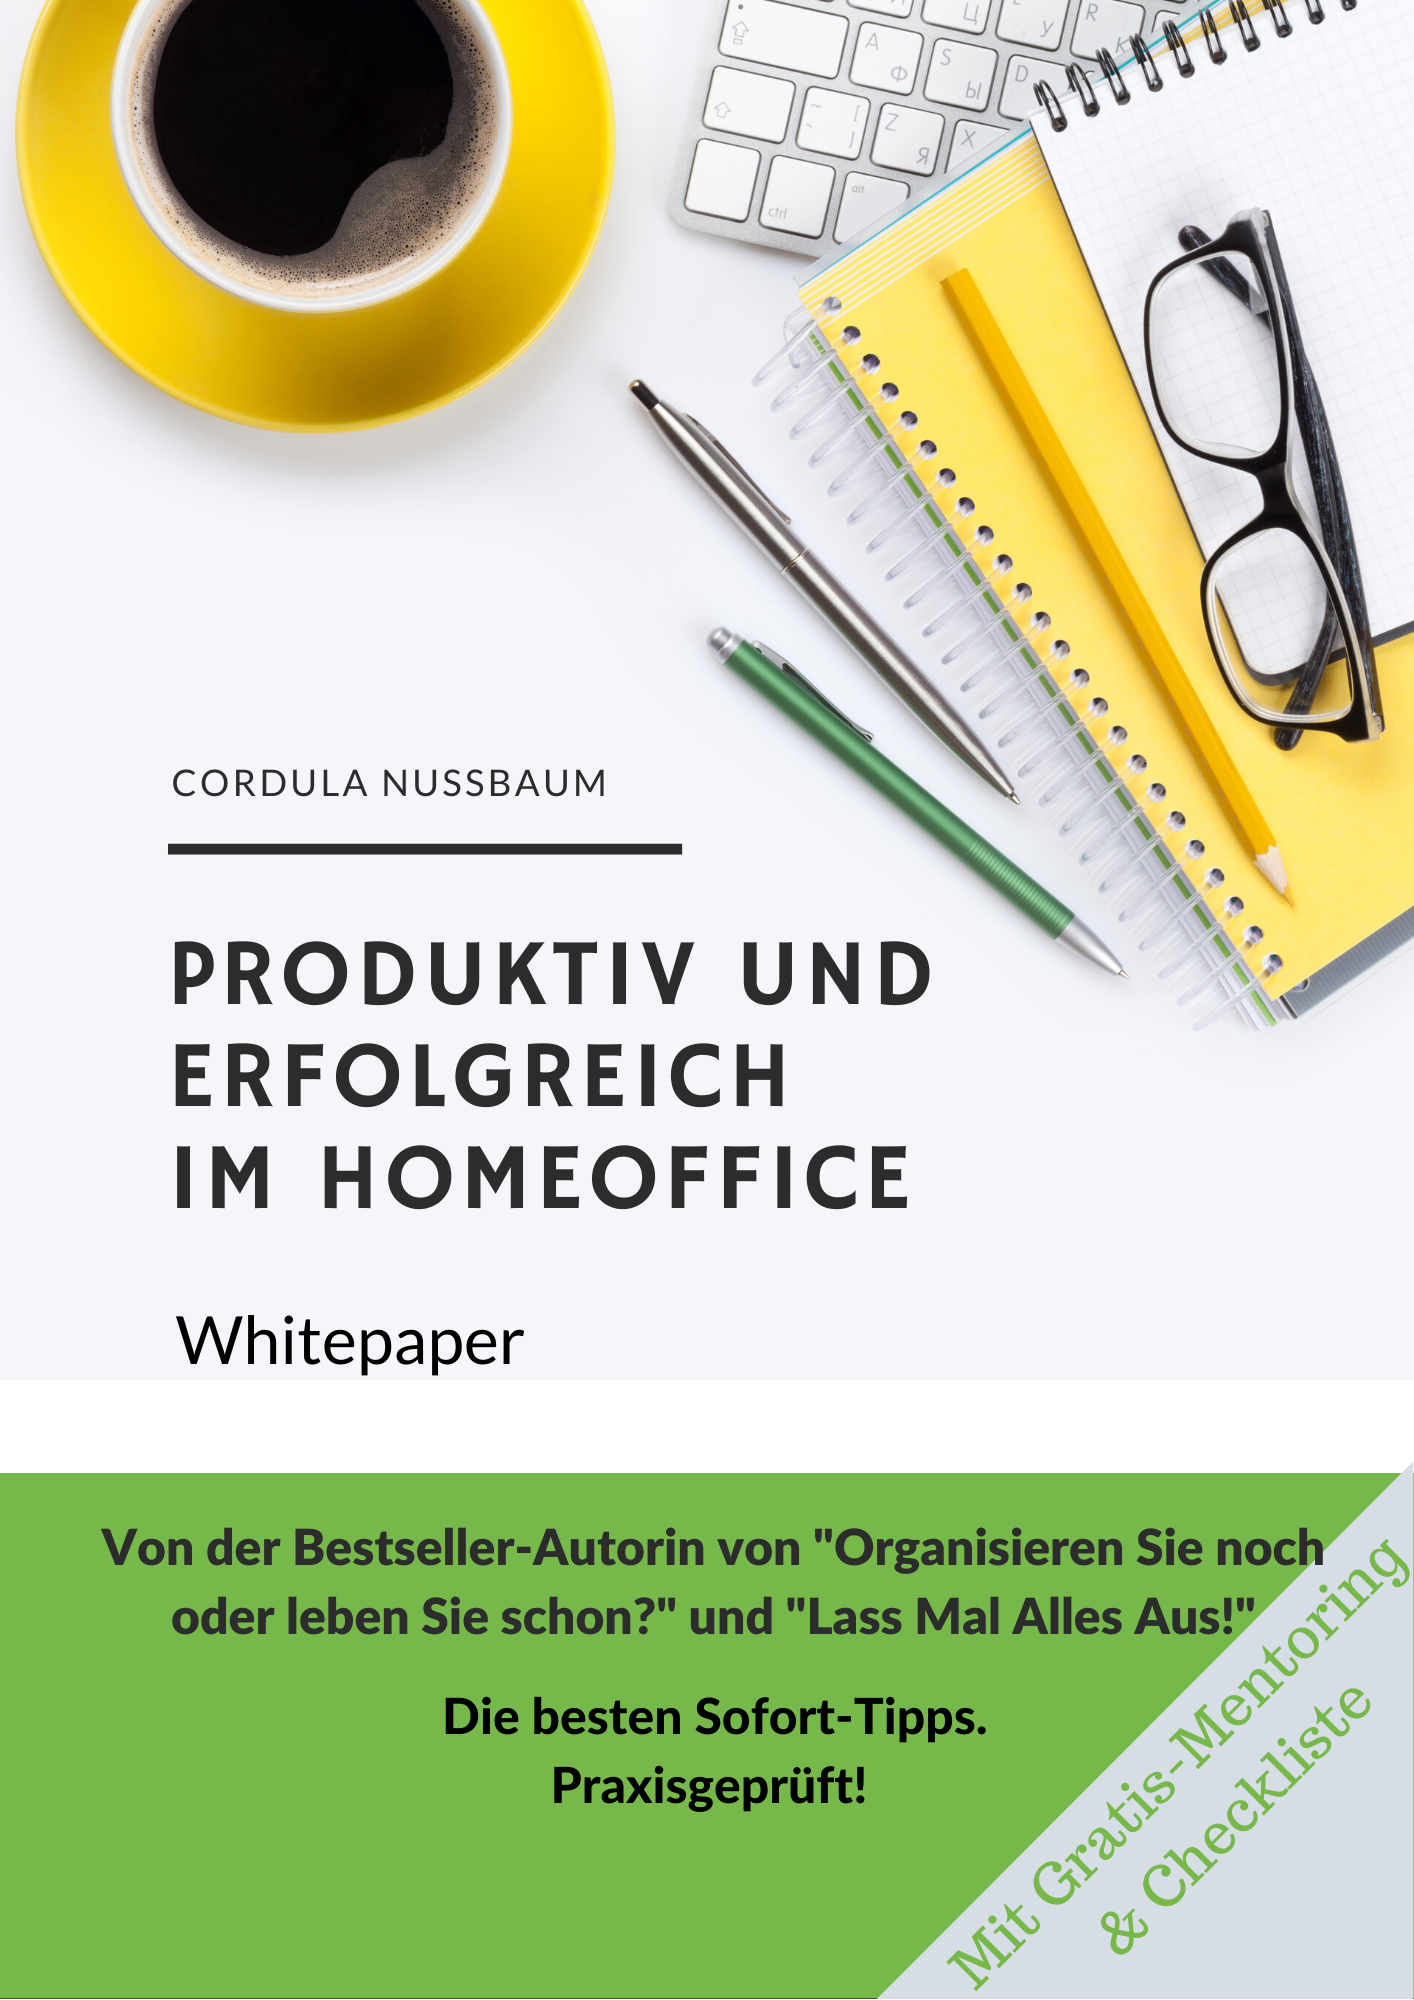 Home Office_Cordula Nussaum_2_Auflage